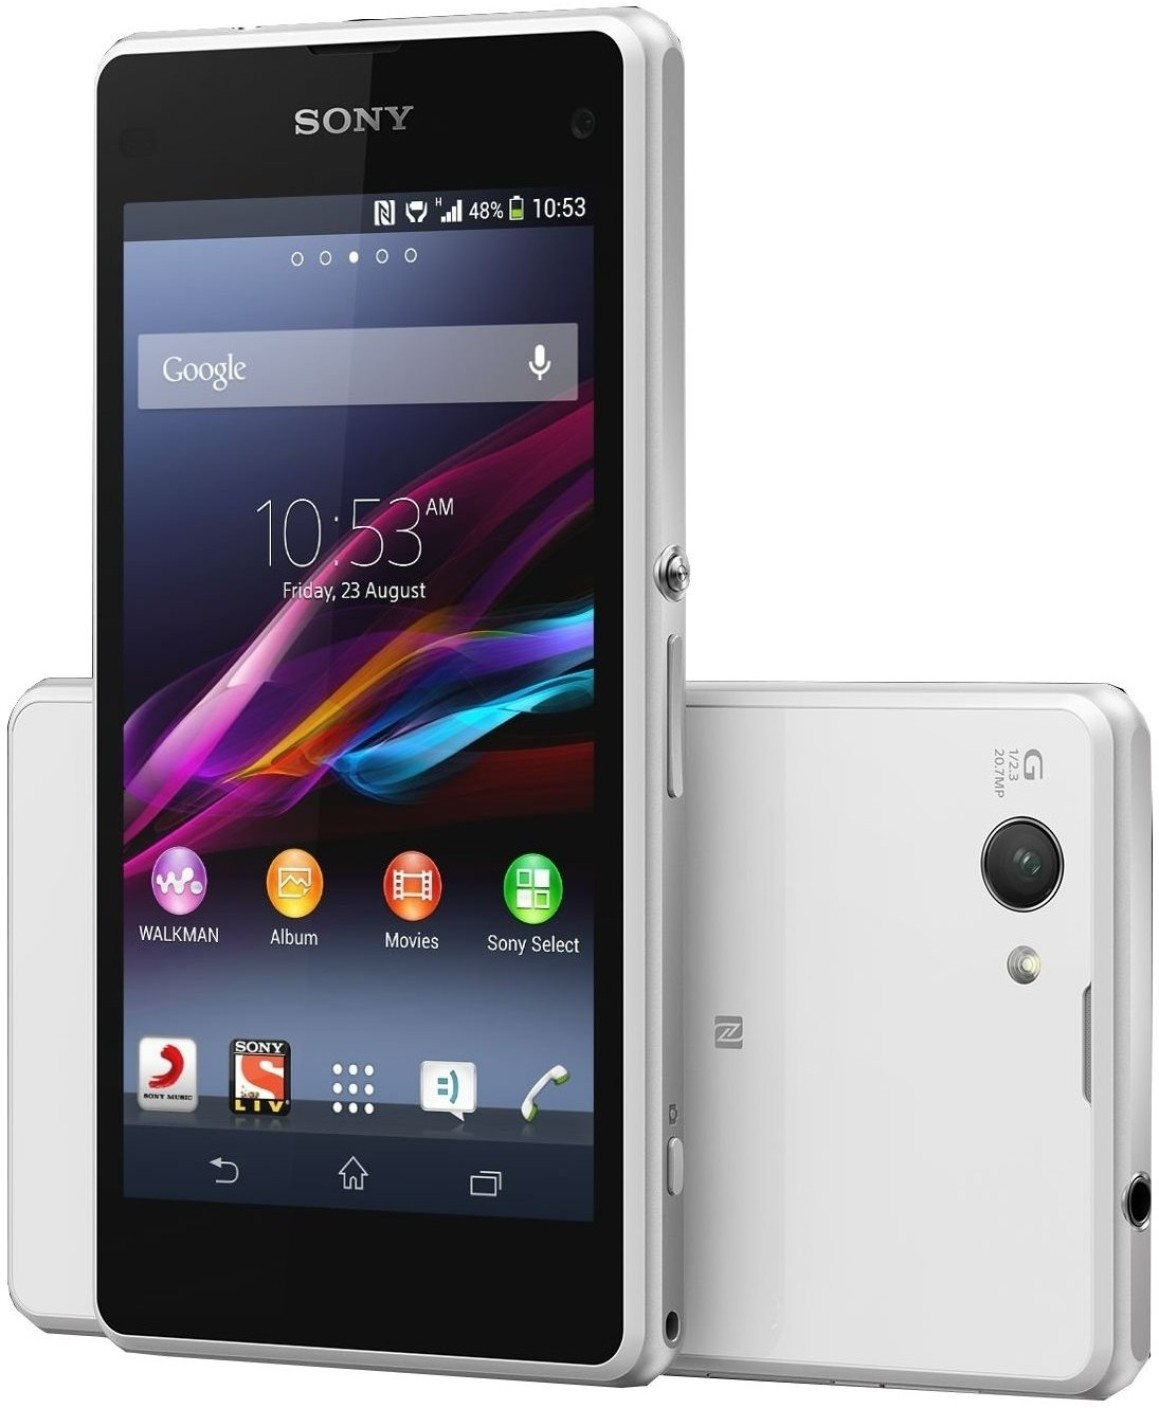 Sony Xperia Z1 Compact (White, 16 GB) Online at Best Price ...